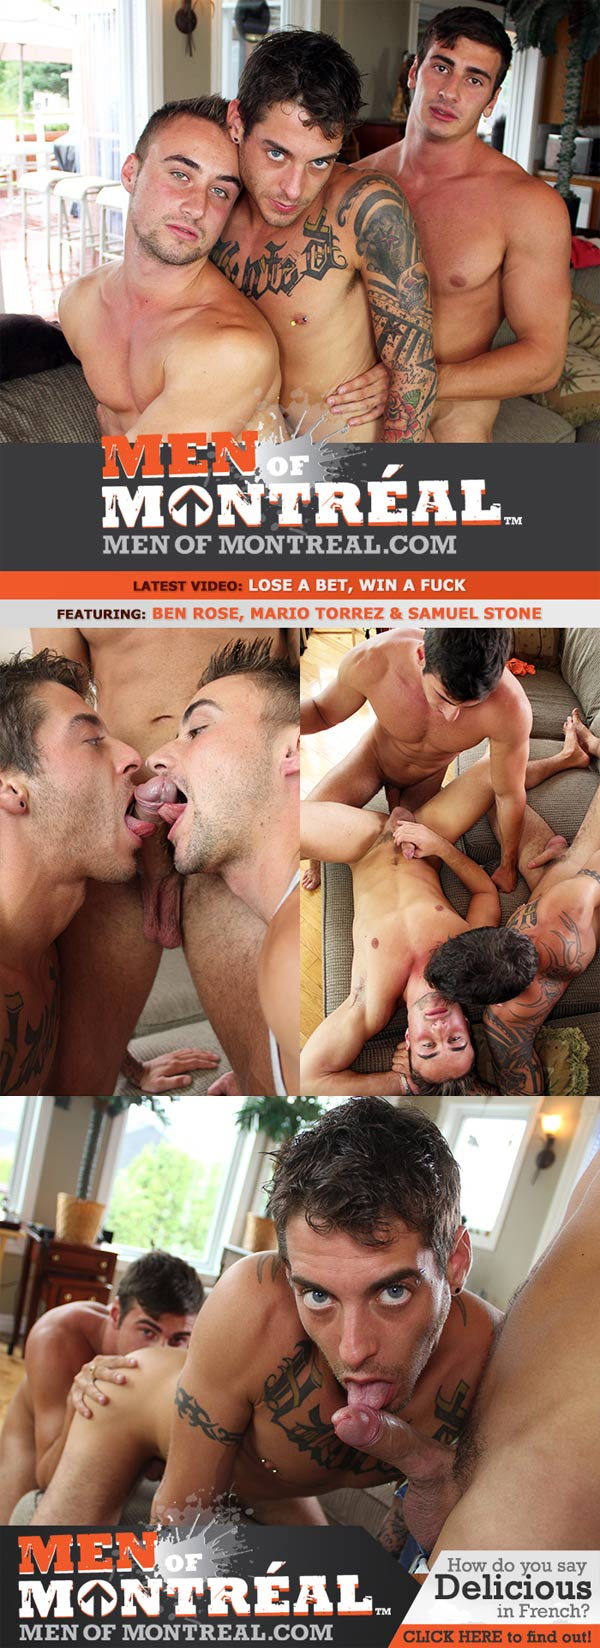 Lose A Bet, Win A Fuck (Ben Rose, Mario Torrez & Samuel Stone) at MenOfMontreal